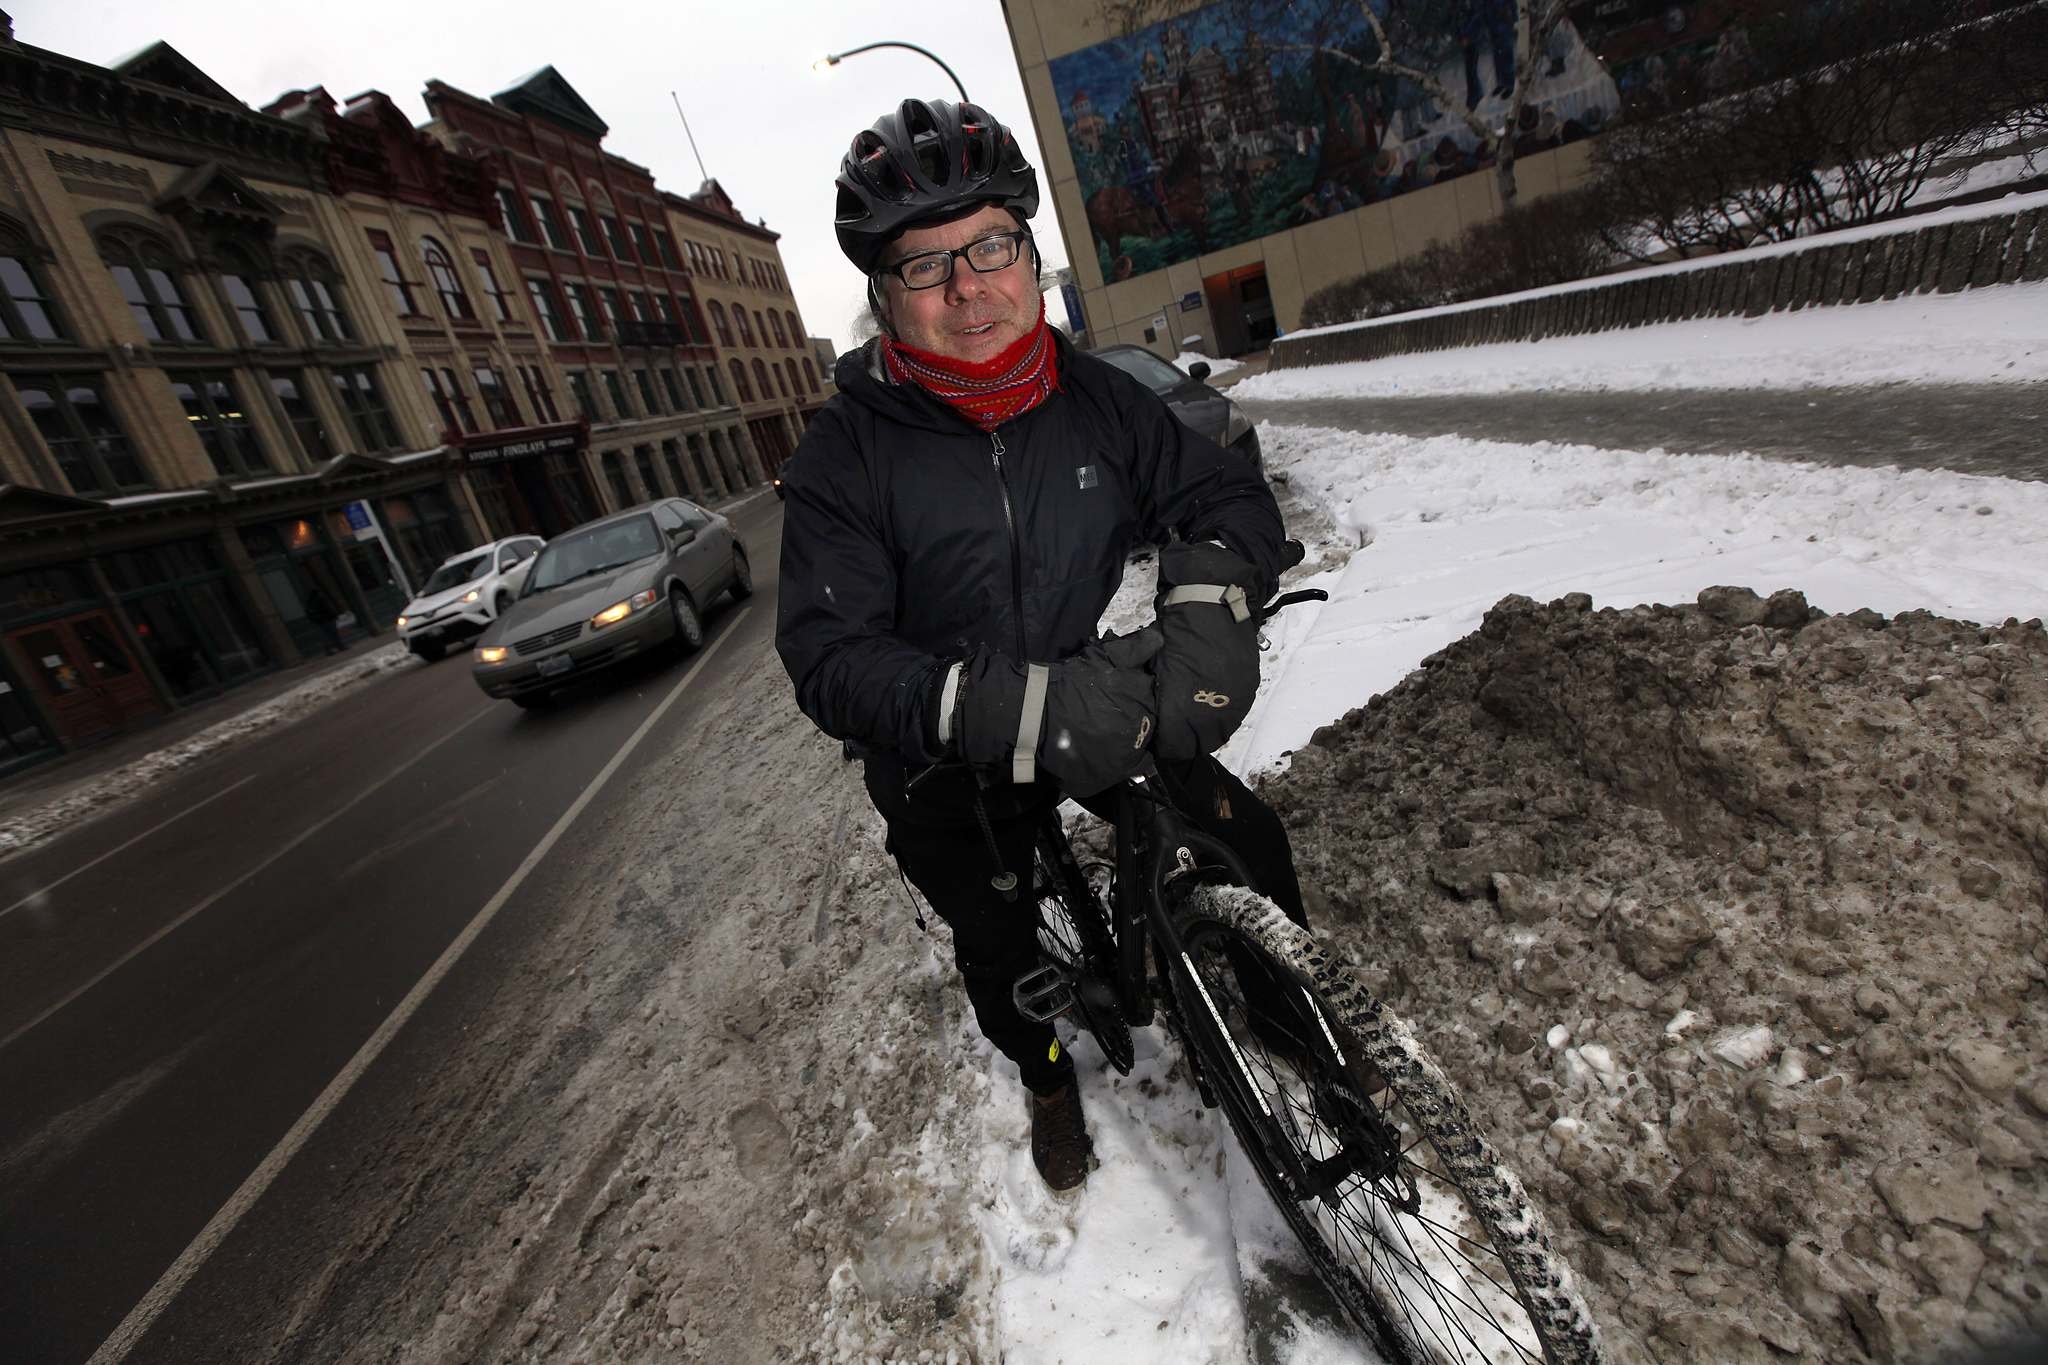 PHIL HOSSACK / WINNIPEG FREE PRESS</p><p>Mark Cohoe executive director of the advocacy group Bike Winnipeg, thinks the more people that cycle as a way to get around, the bigger the reduction in traffic congestion downtown and greenhouse gas emissions will be.</p>